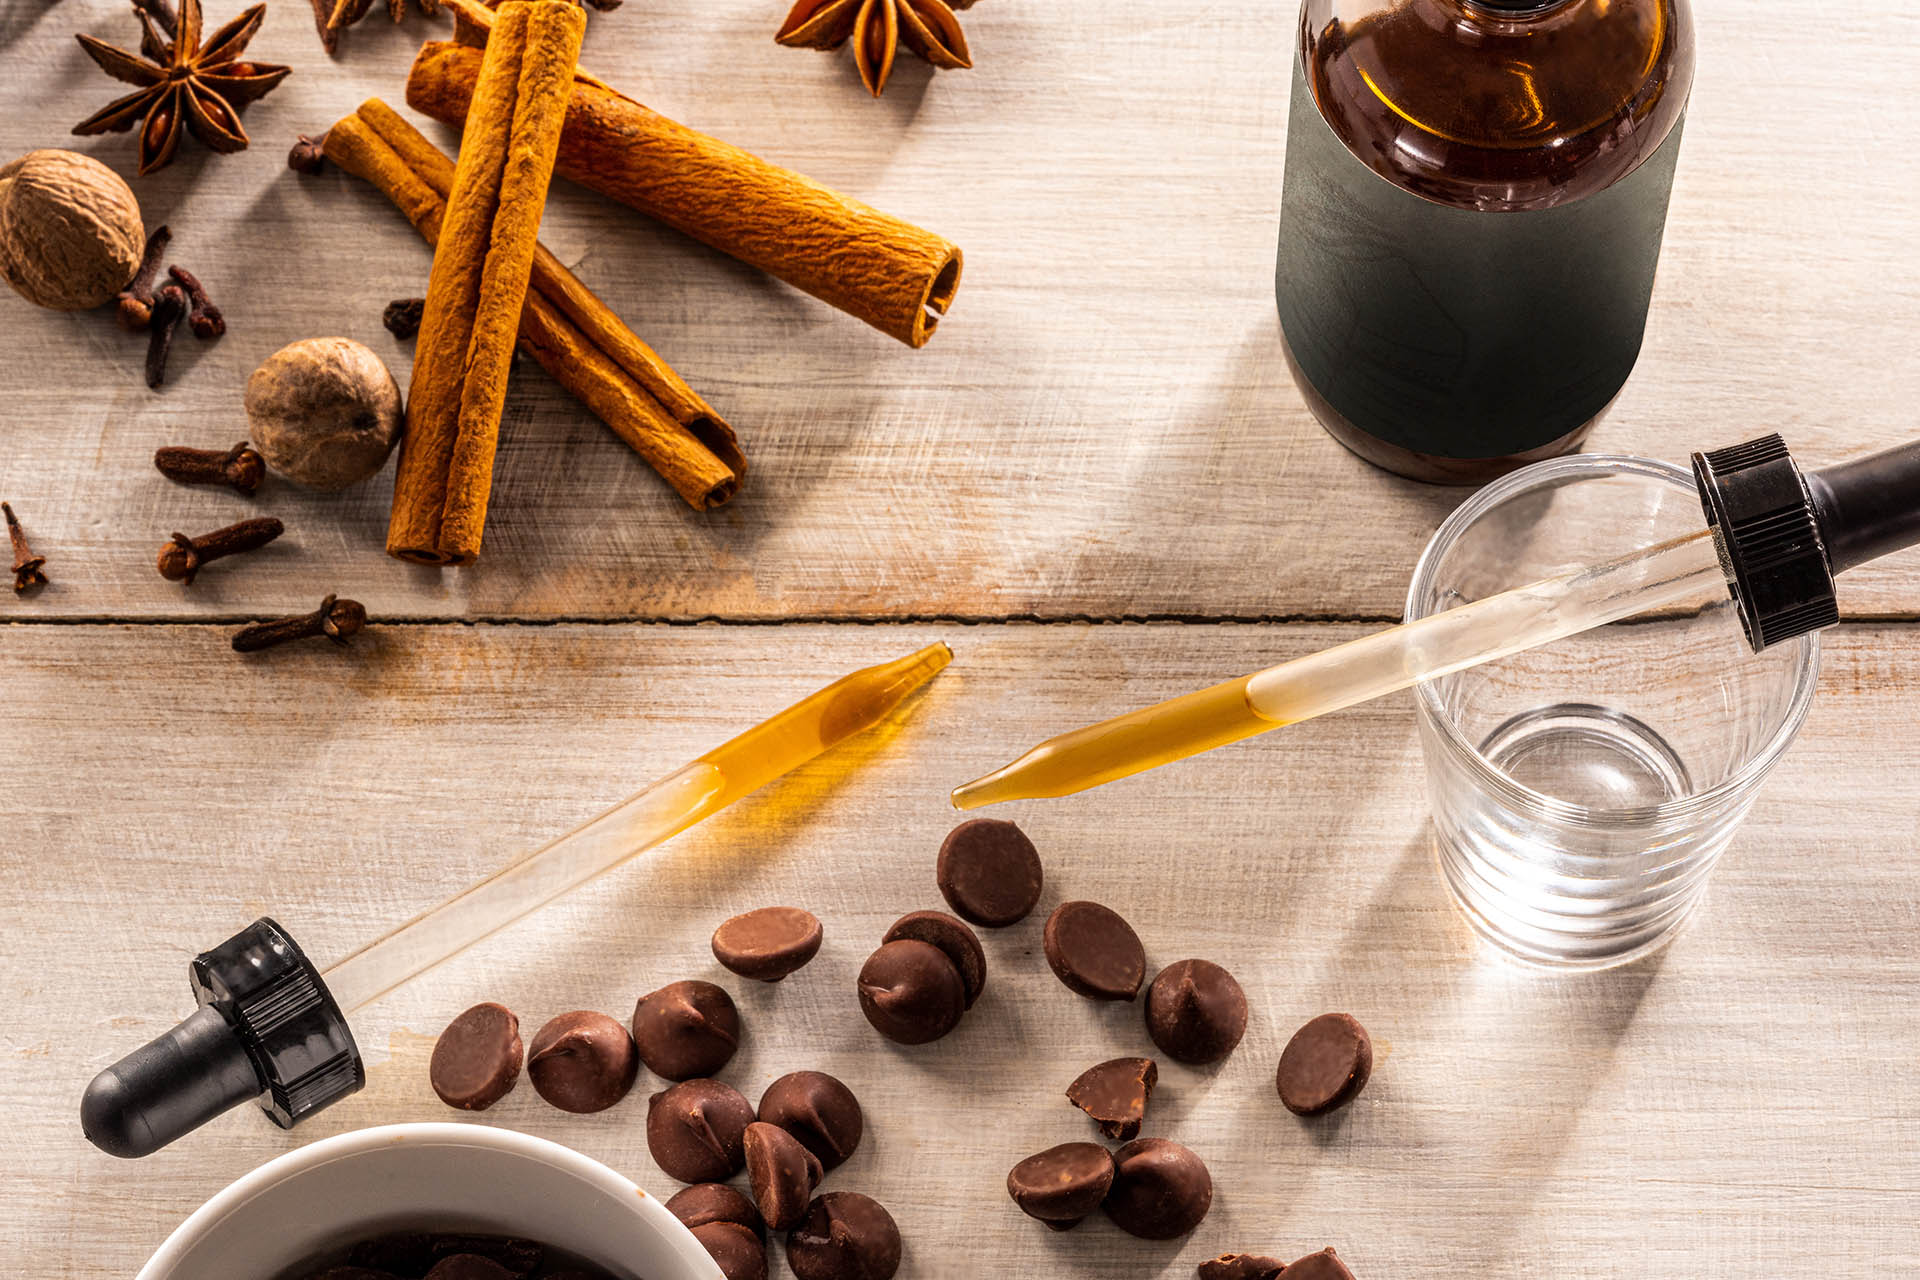 Chocolate chips, spices and bitters droppers